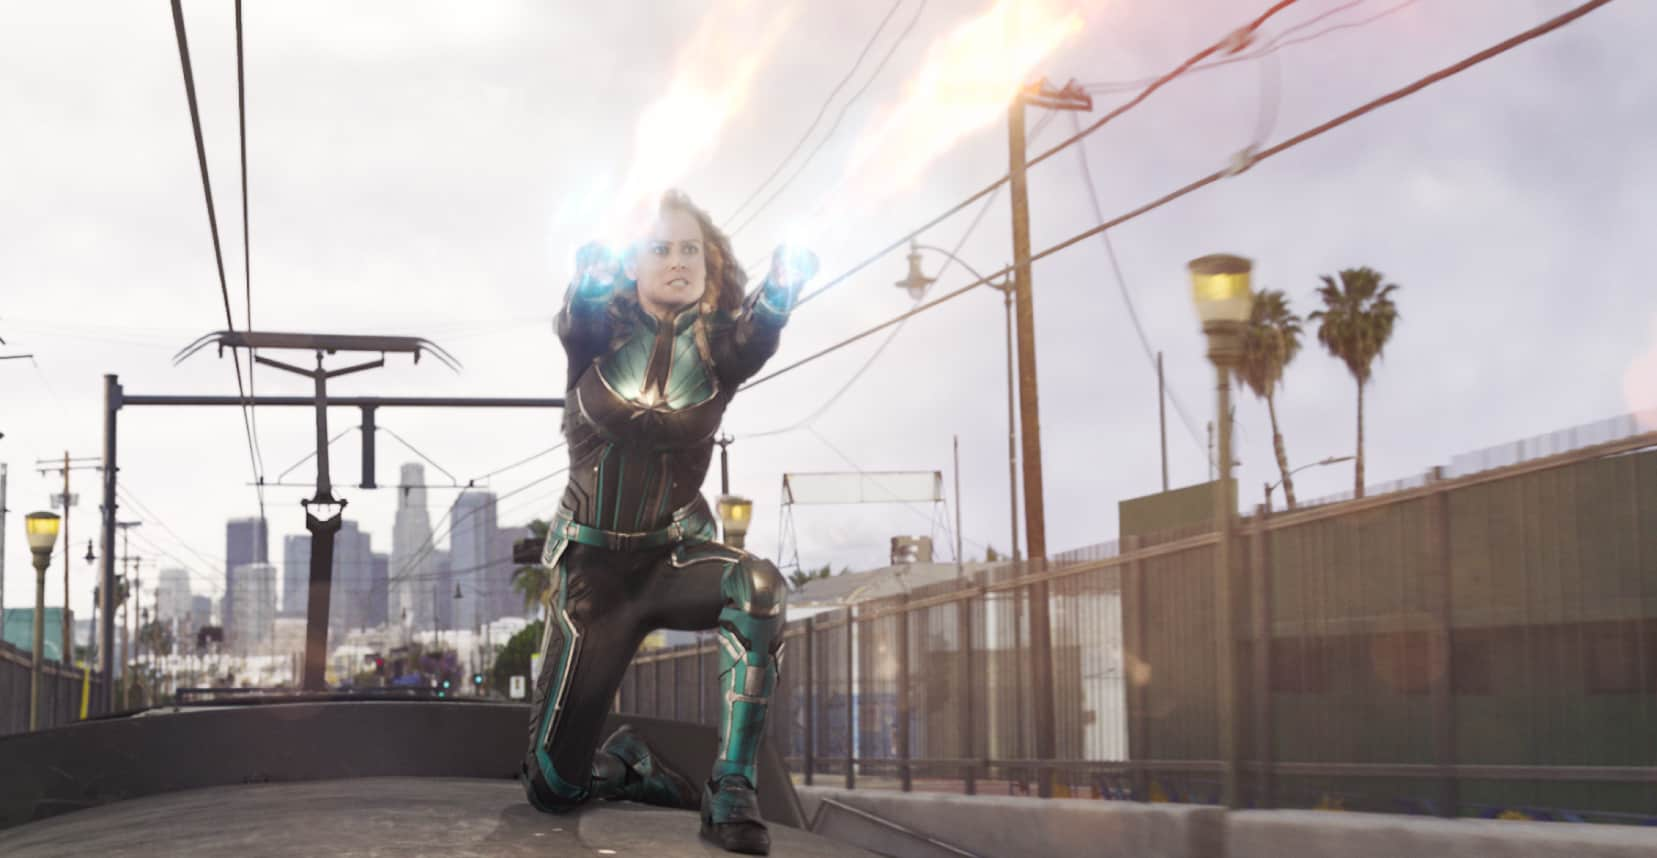 Find Captain Marvel quotes from the movie, including the best + funny quotes.